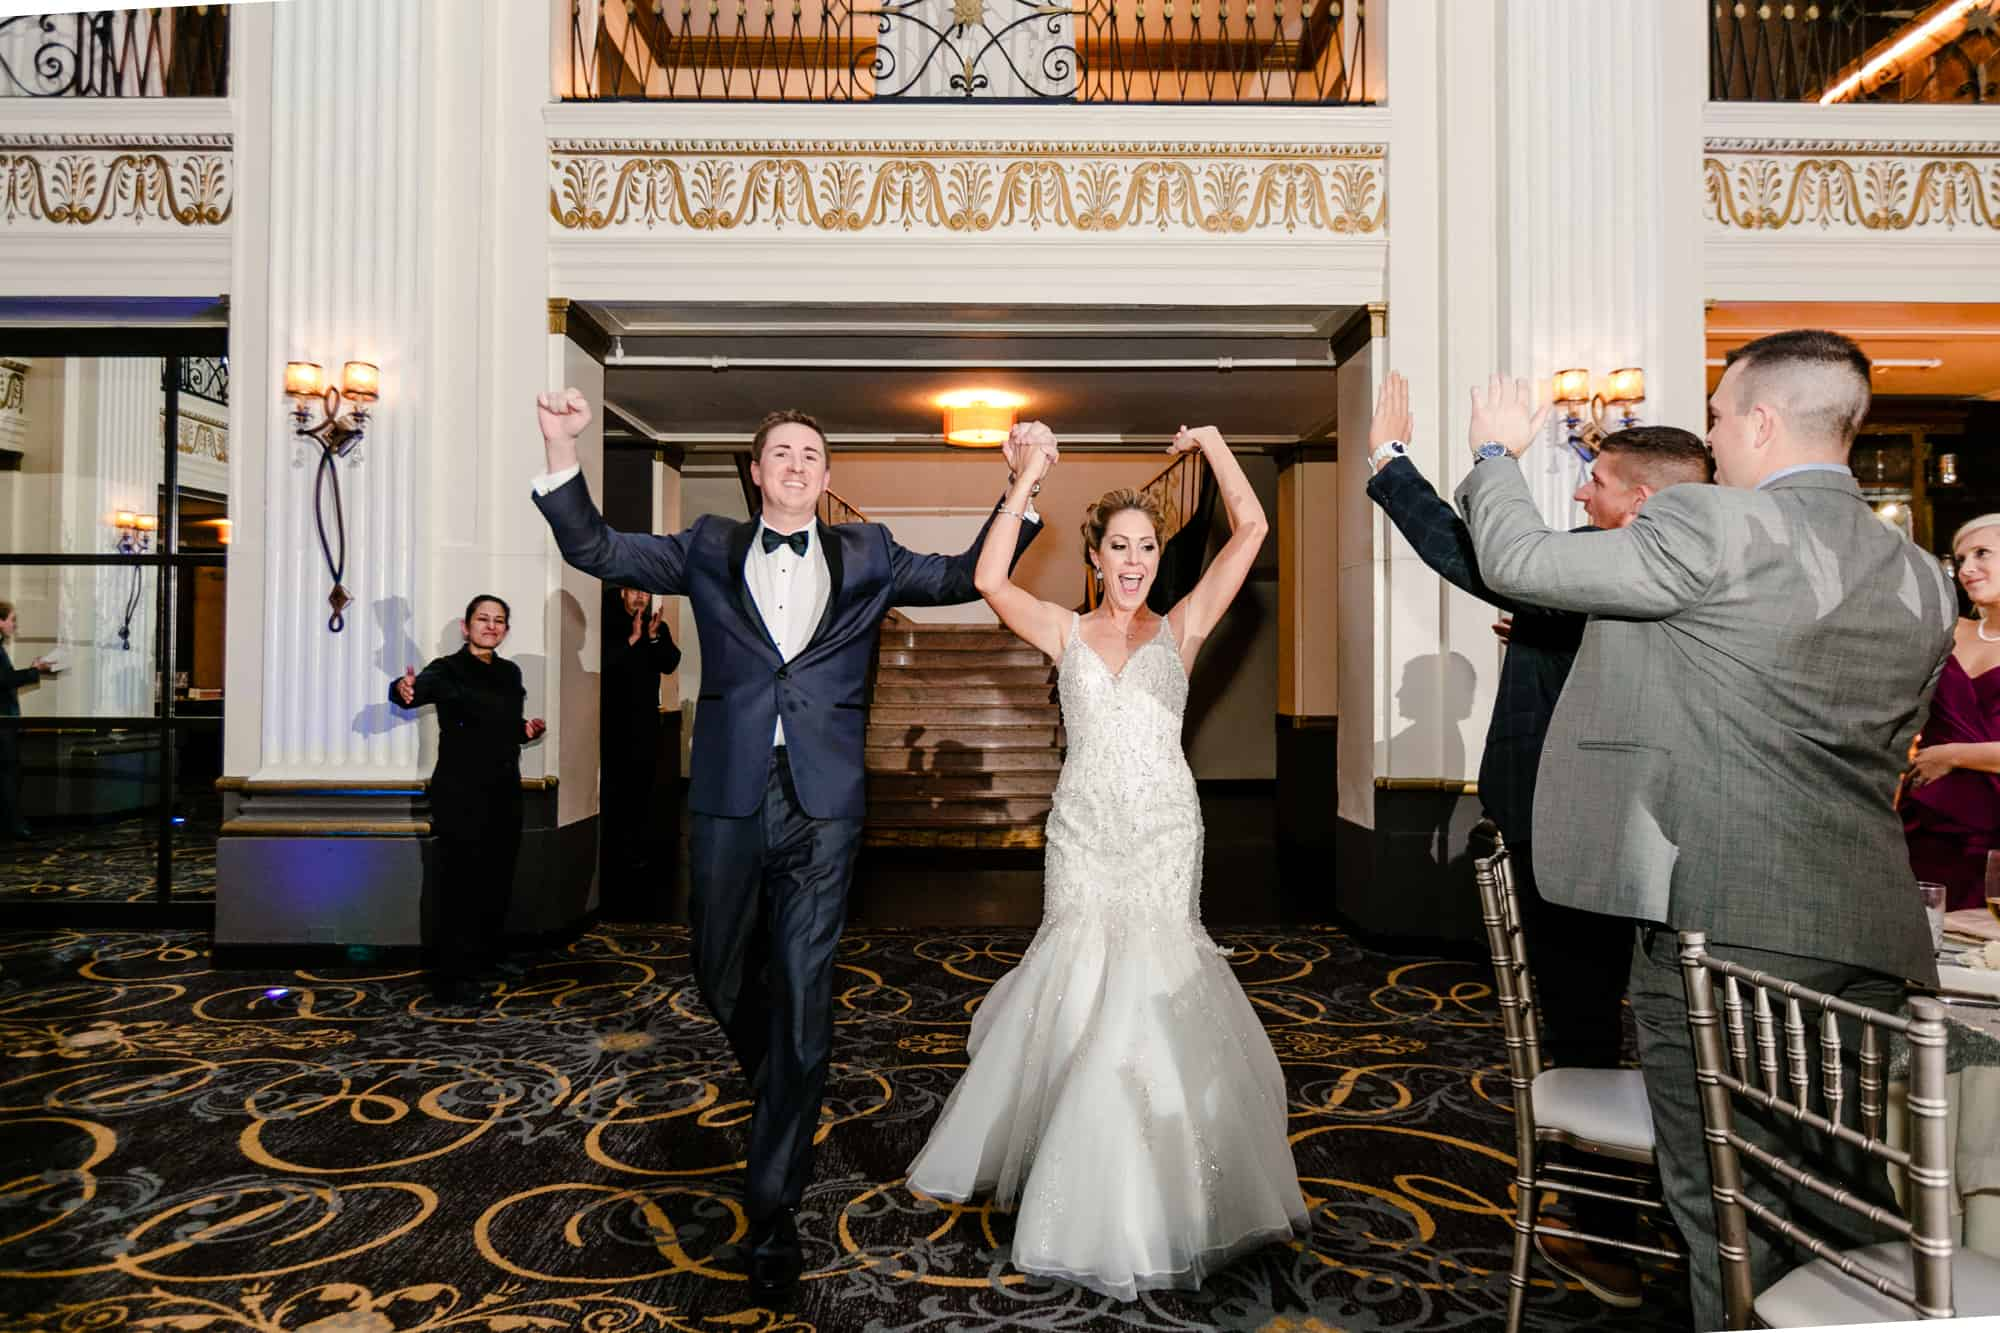 Bride and groom raising their hands in the air while entering reception